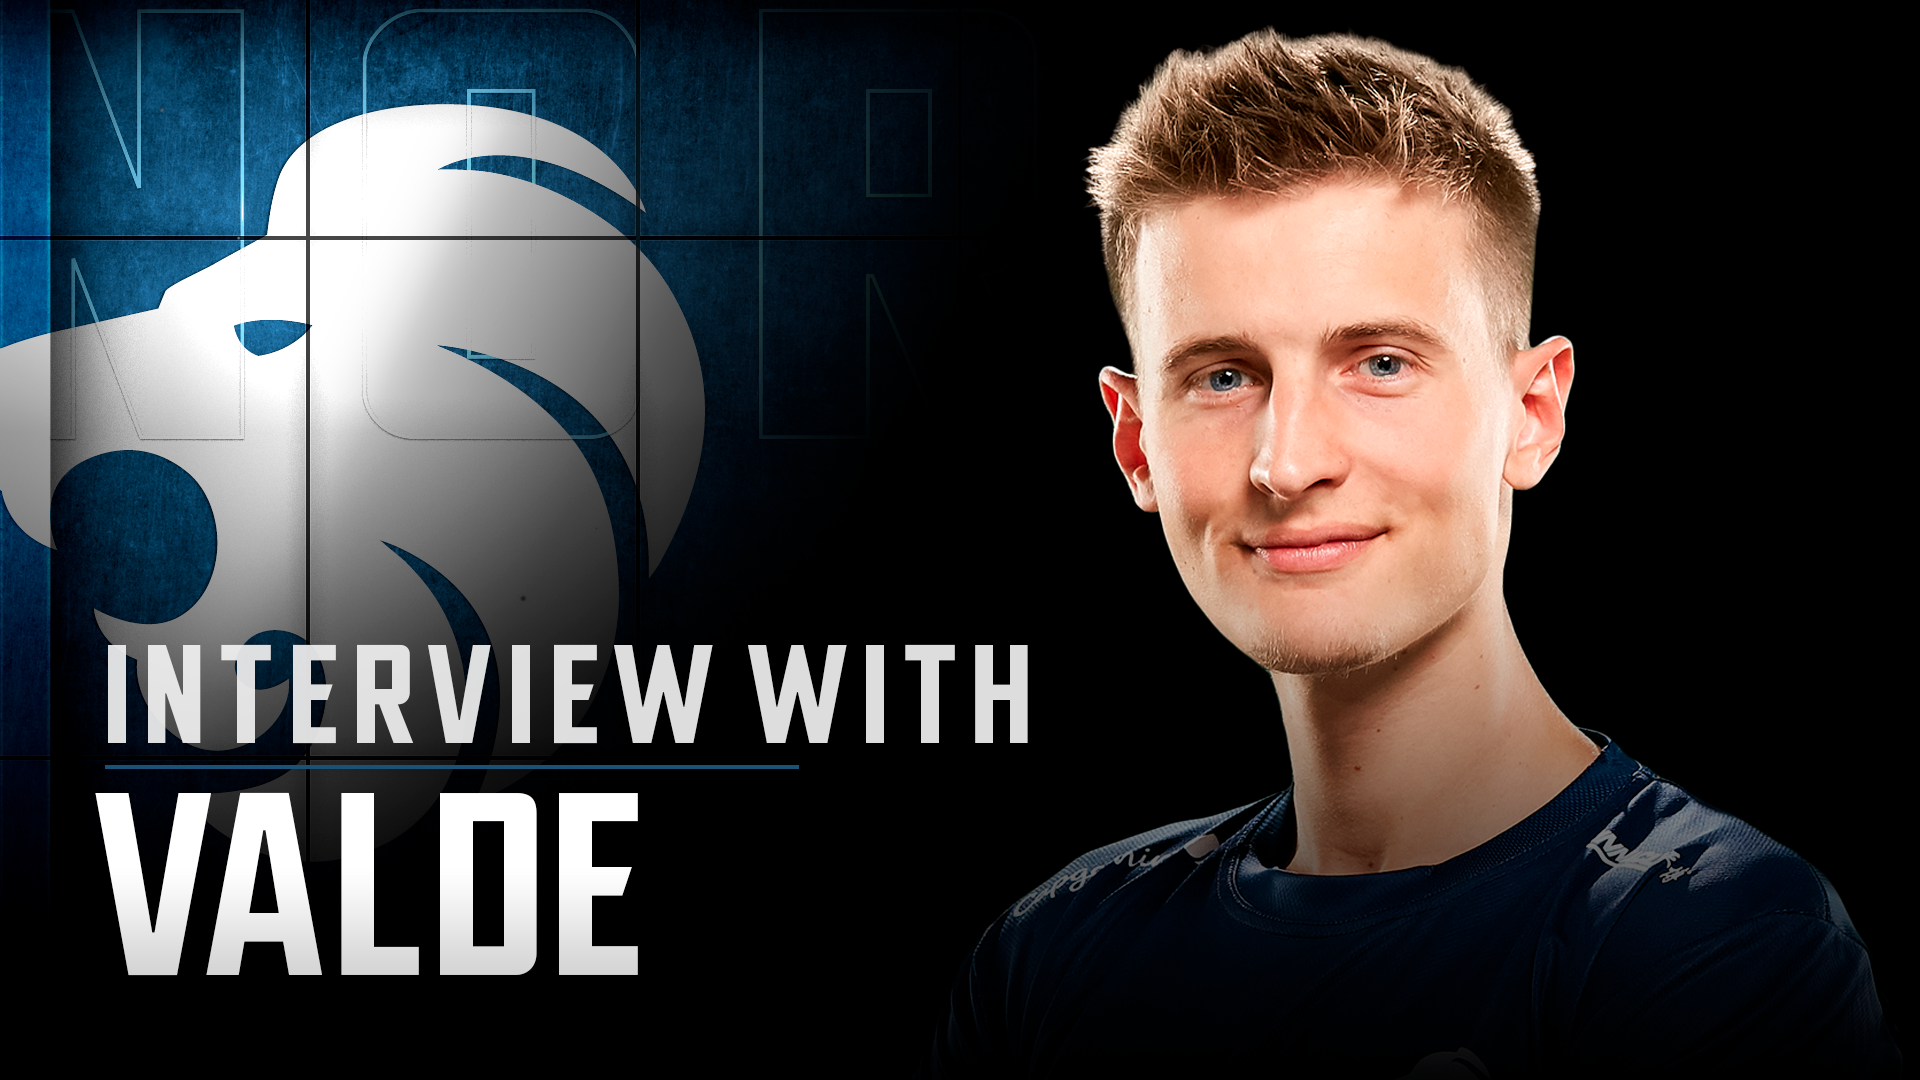 """We have the skill to go far"" 